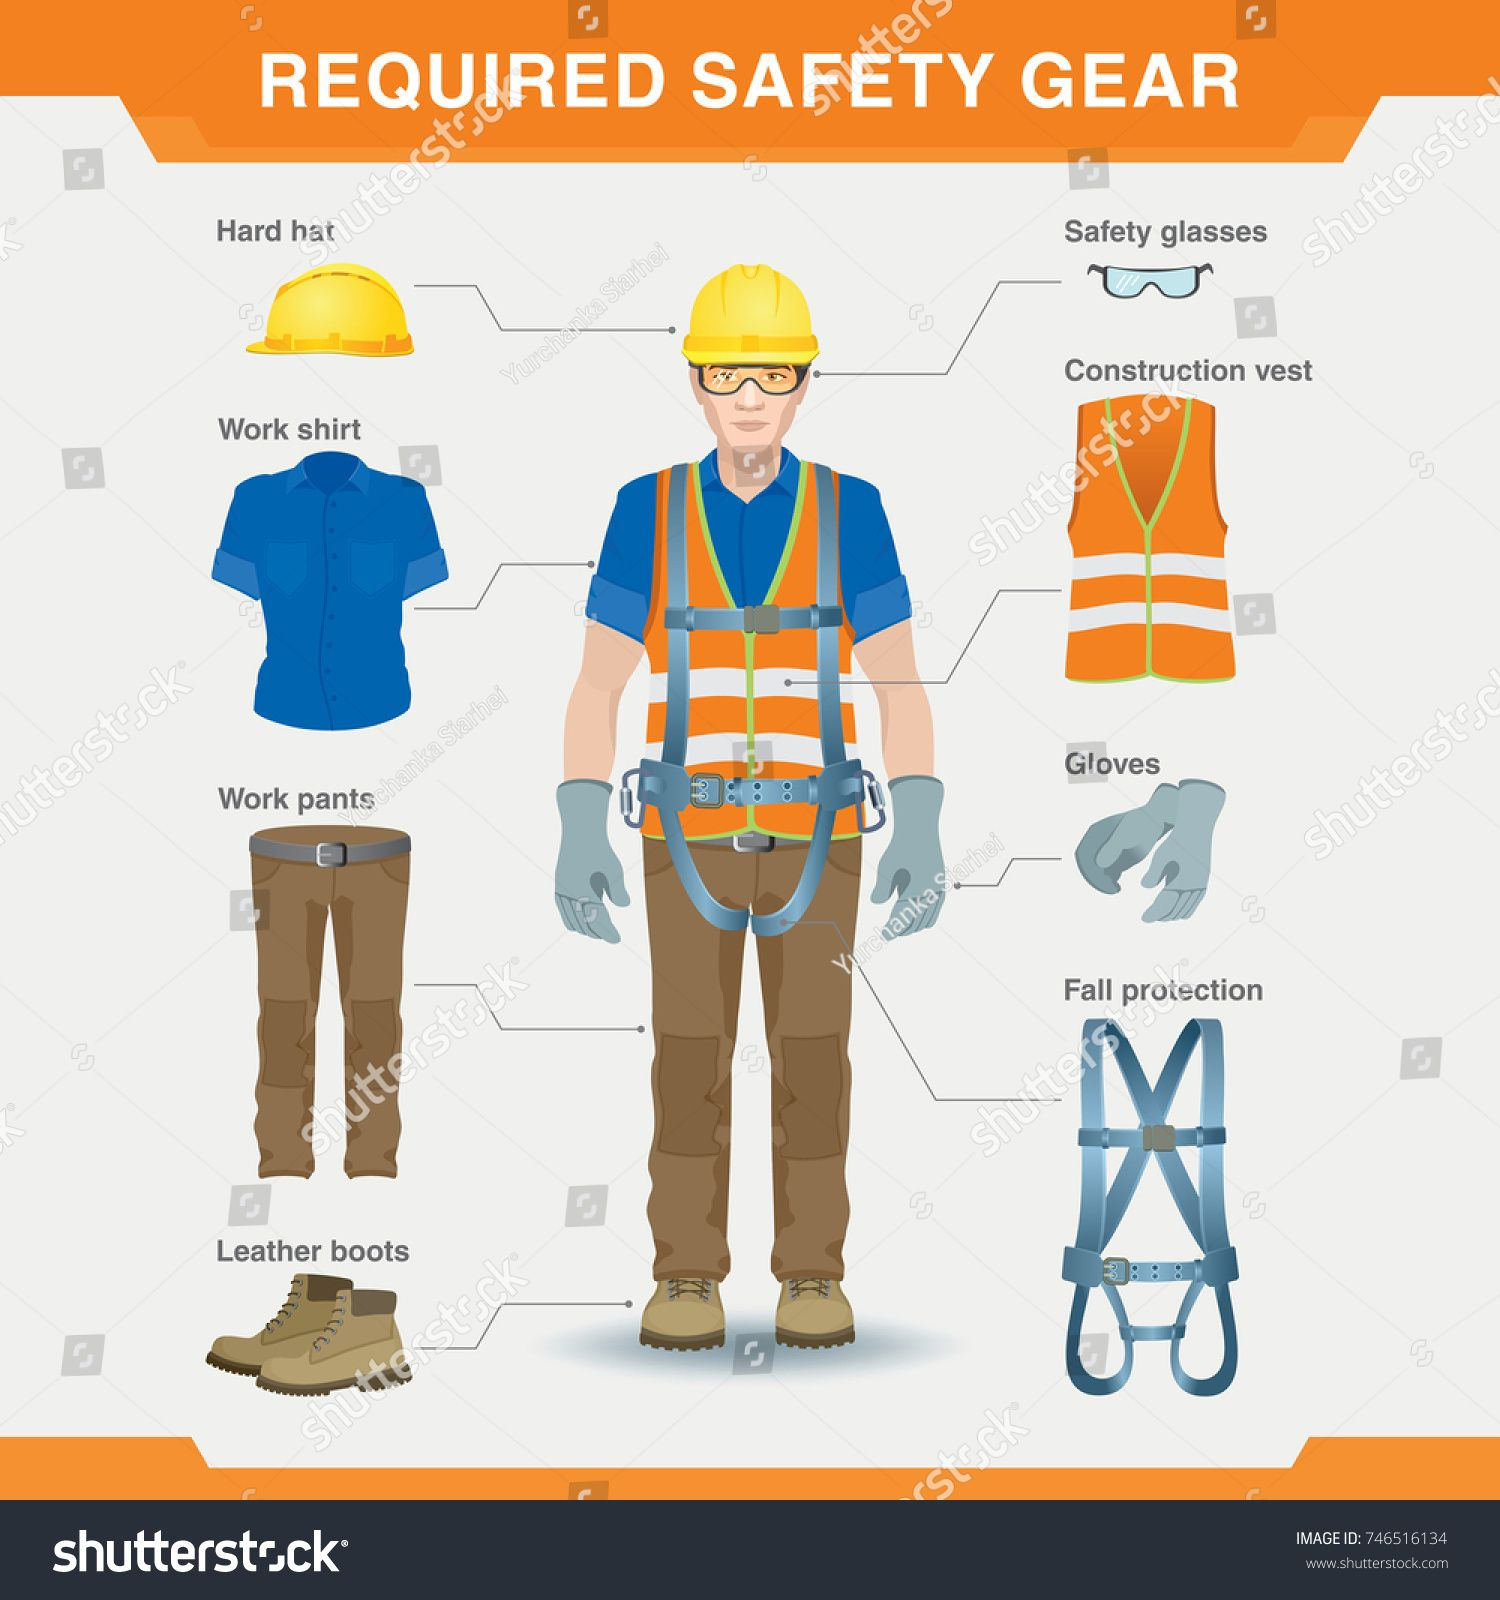 Required Safety Gear Overalls Safety At The Construction Site Vector Illustration For An Information Poster Safety Posters Construction Safety Safety Gear